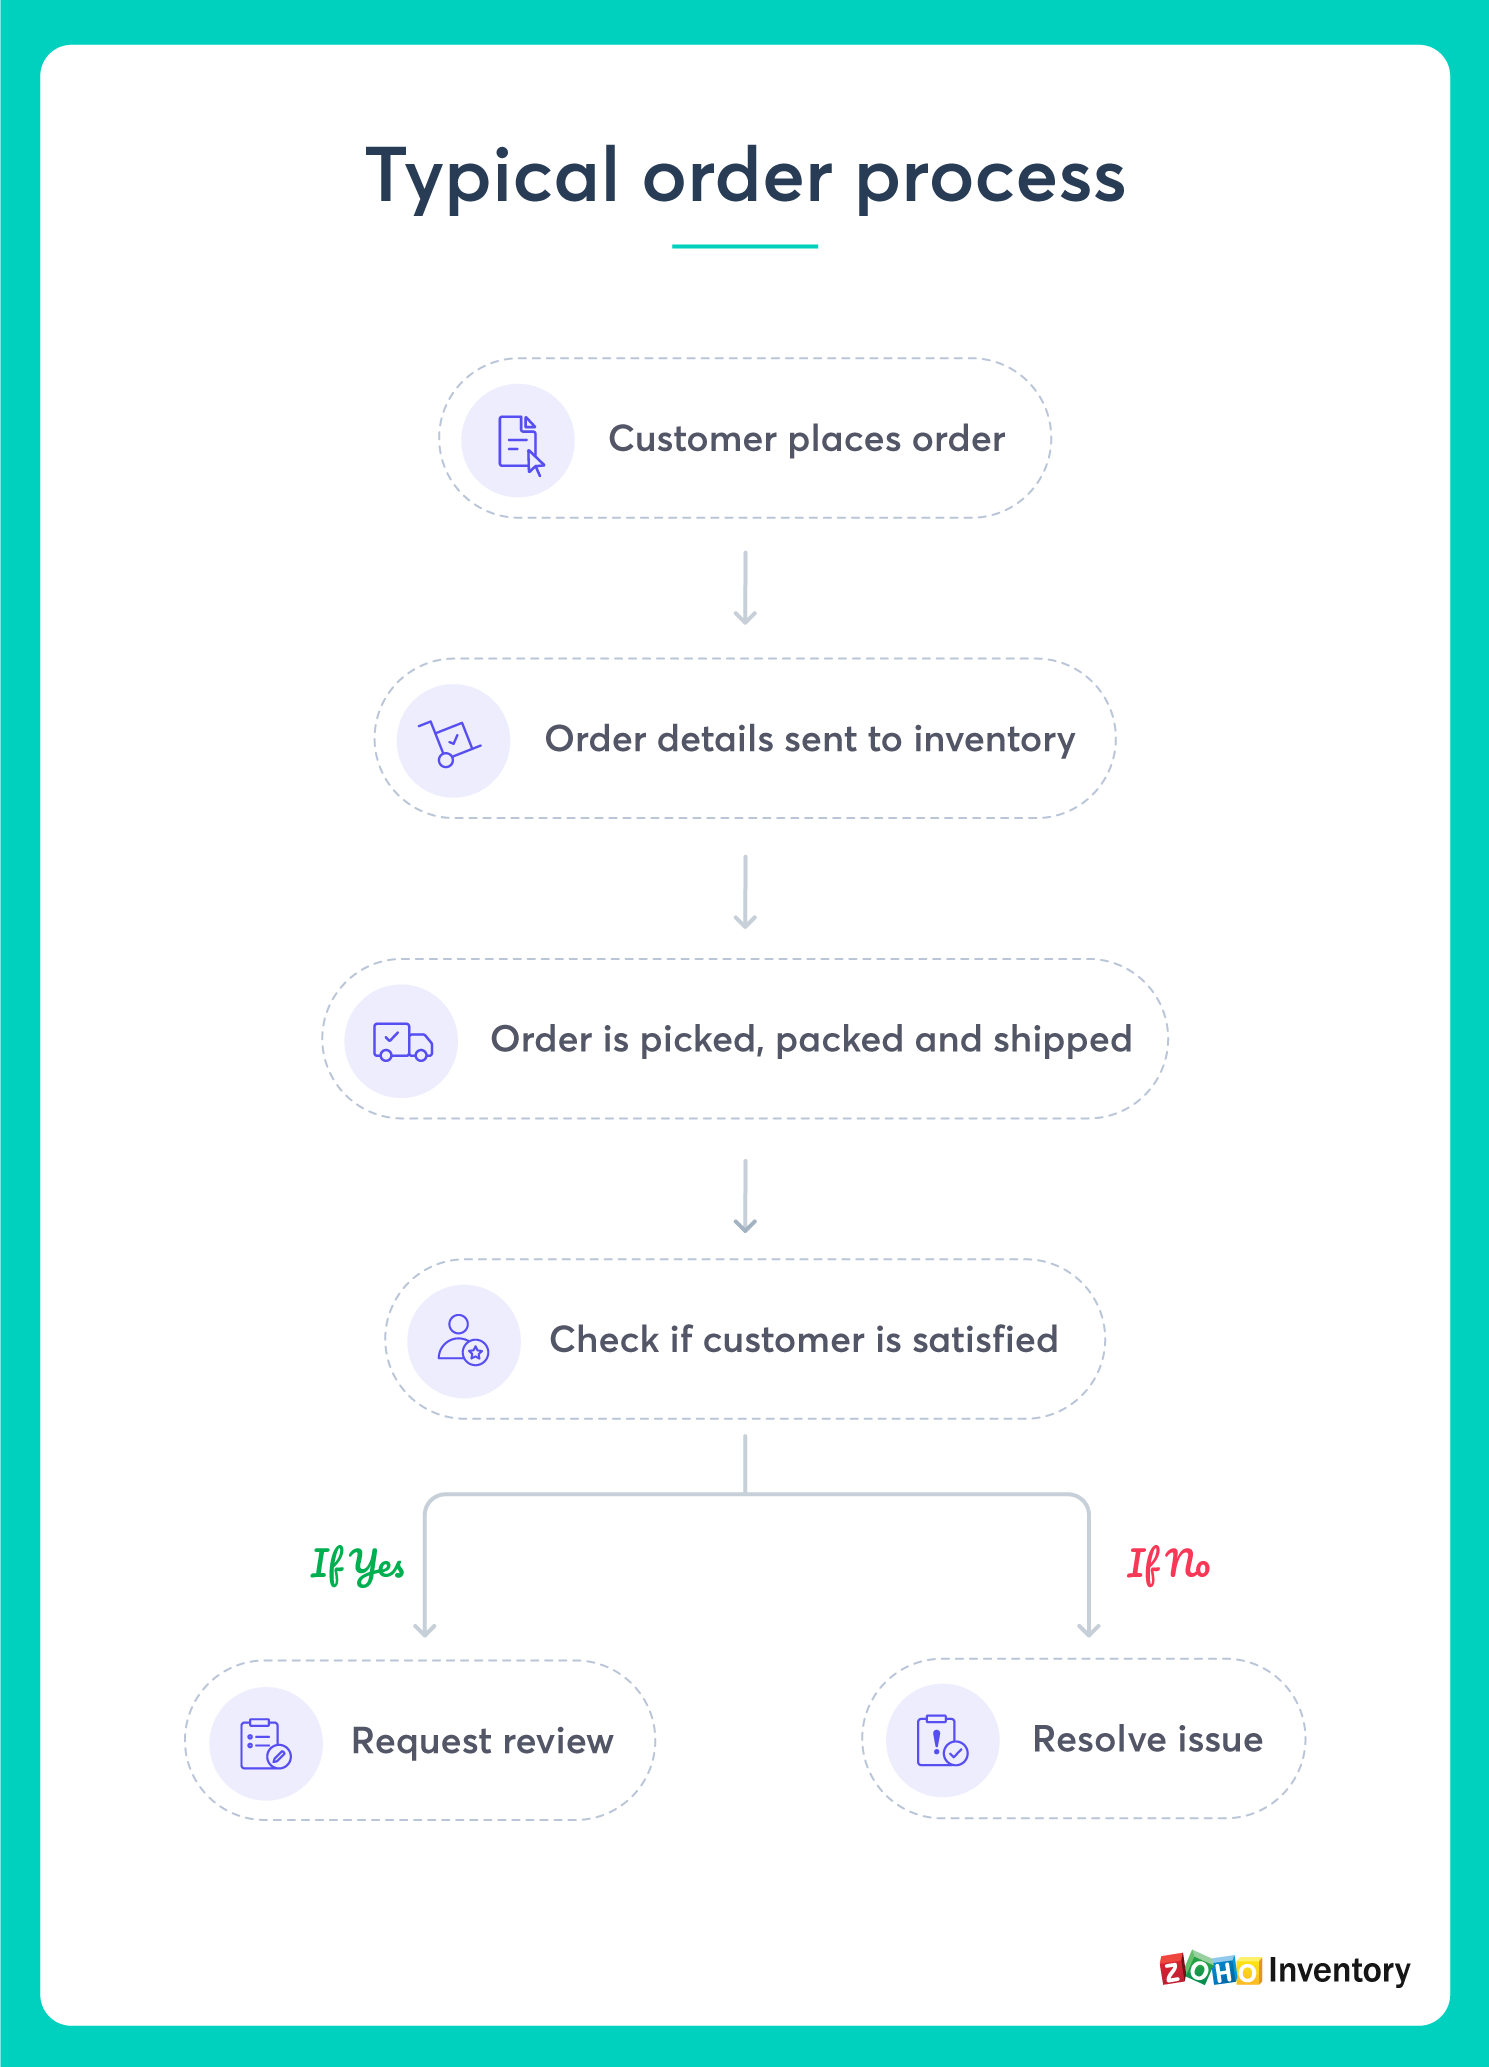 Typical order process